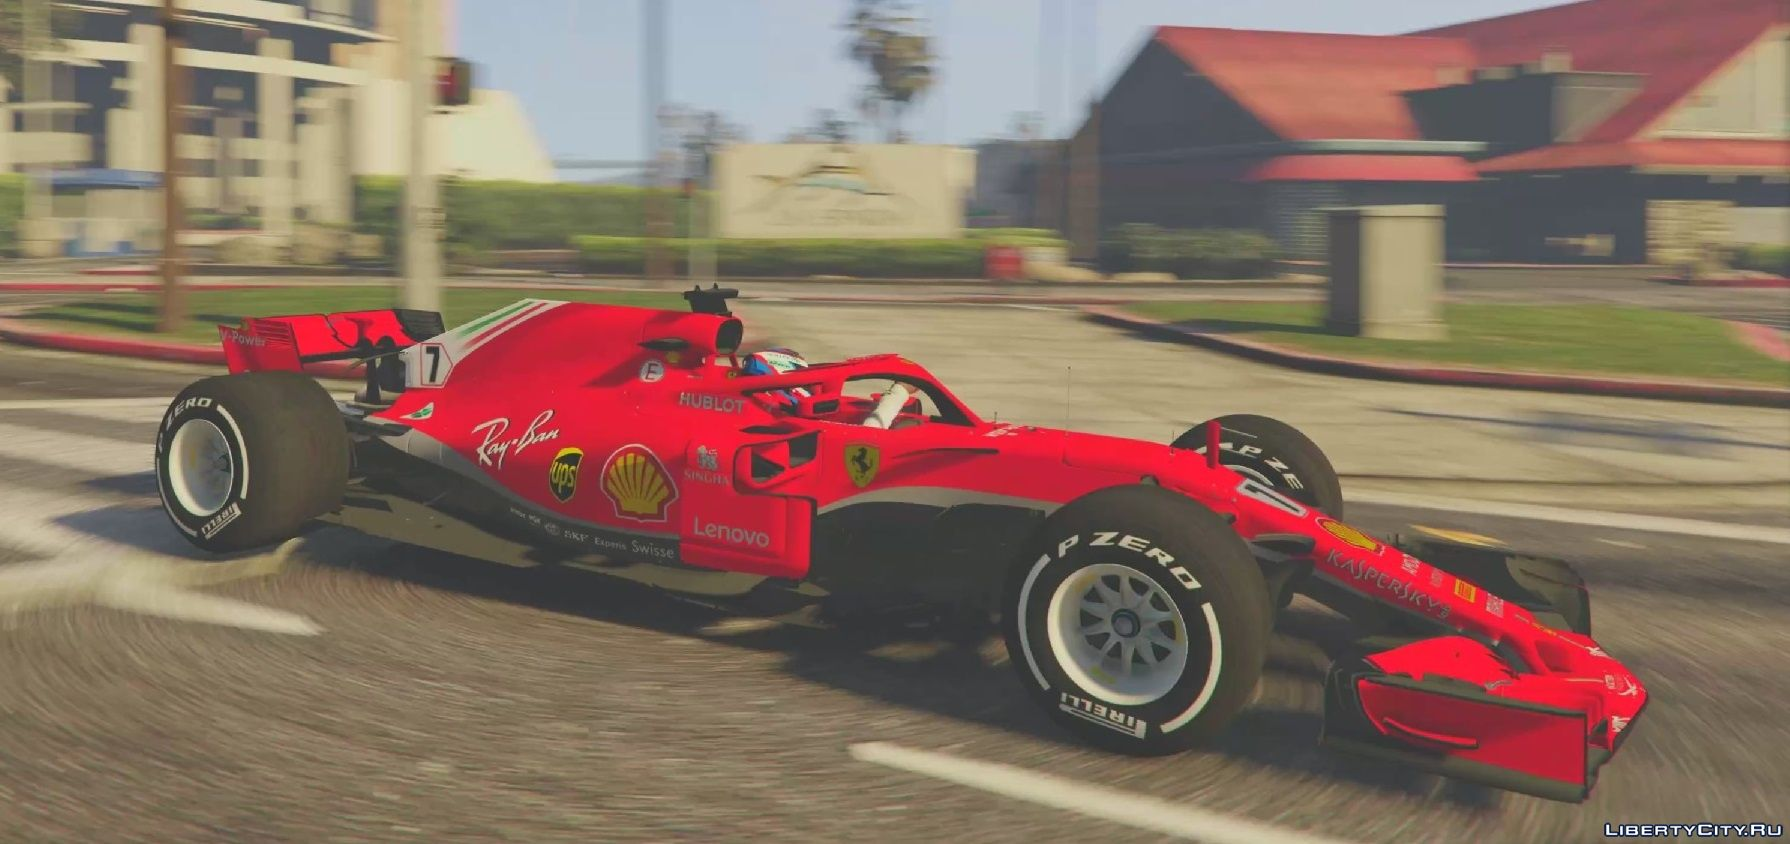 Scuderia Ferrari Sf71 H F1 2018 1 0 For Gta 5